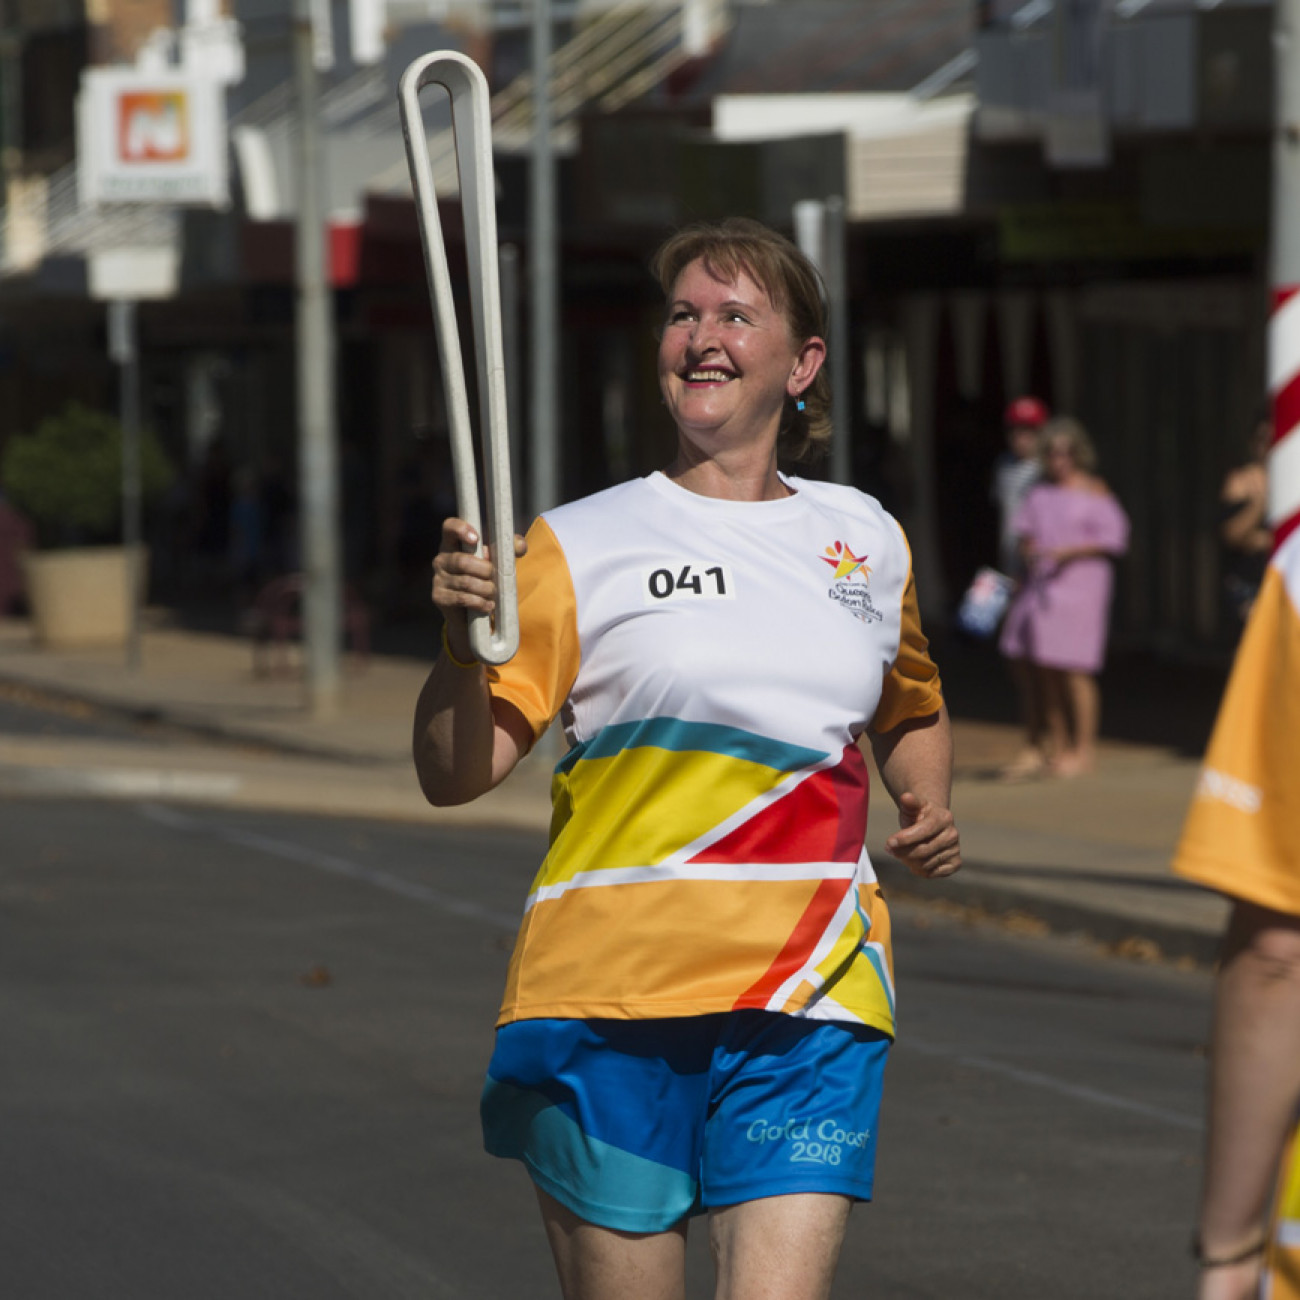 A Batonbearer with the Queen's Baton as the Queen's Baton Relay passed through Griffith